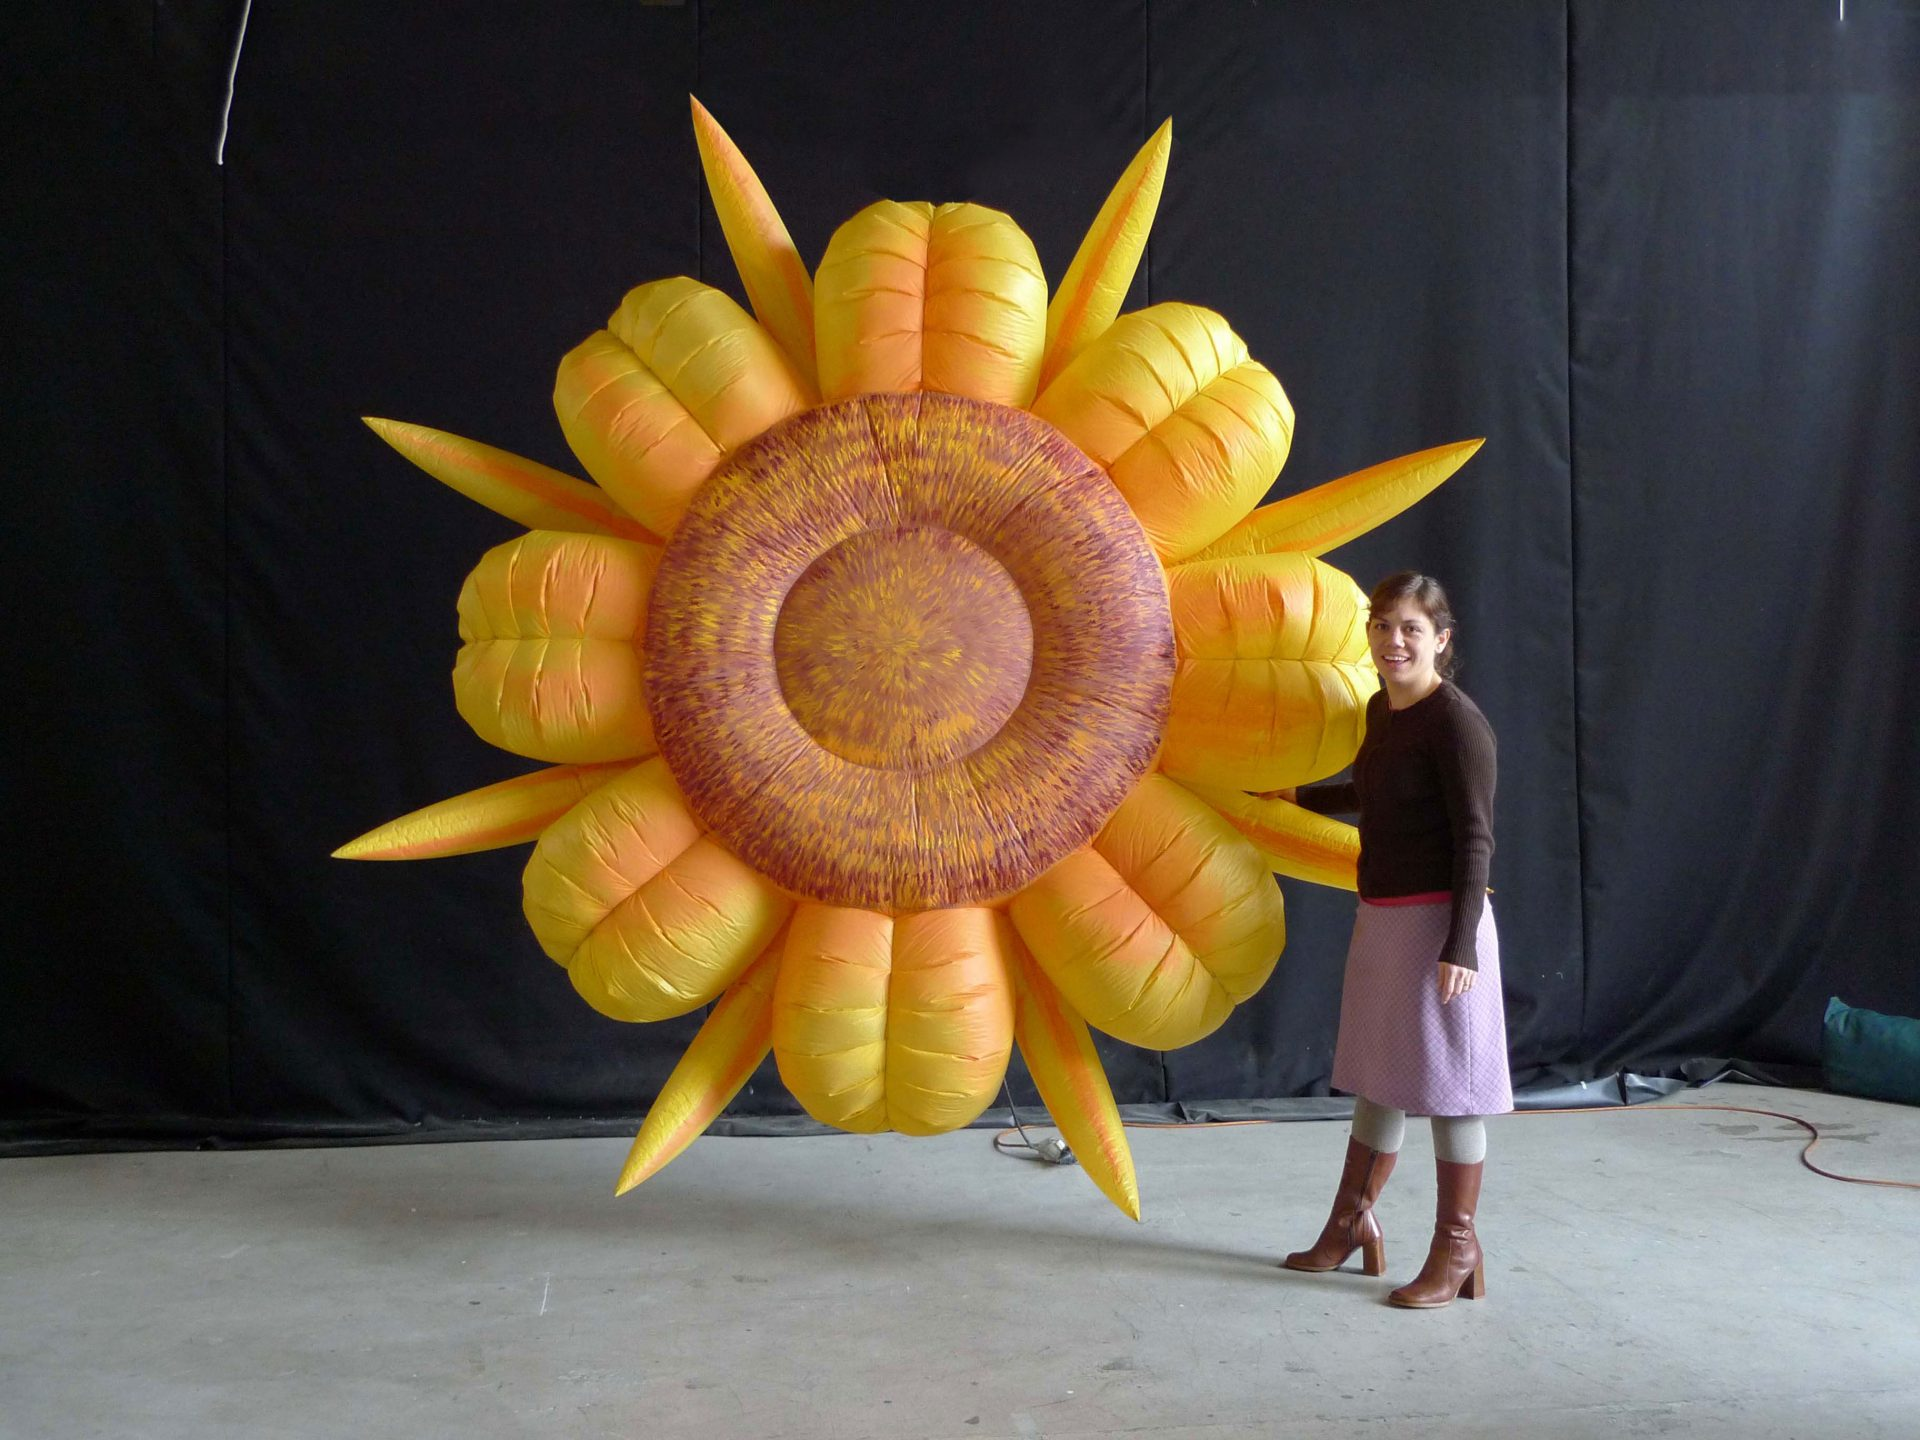 2.5m hand painted inflatable sunflower